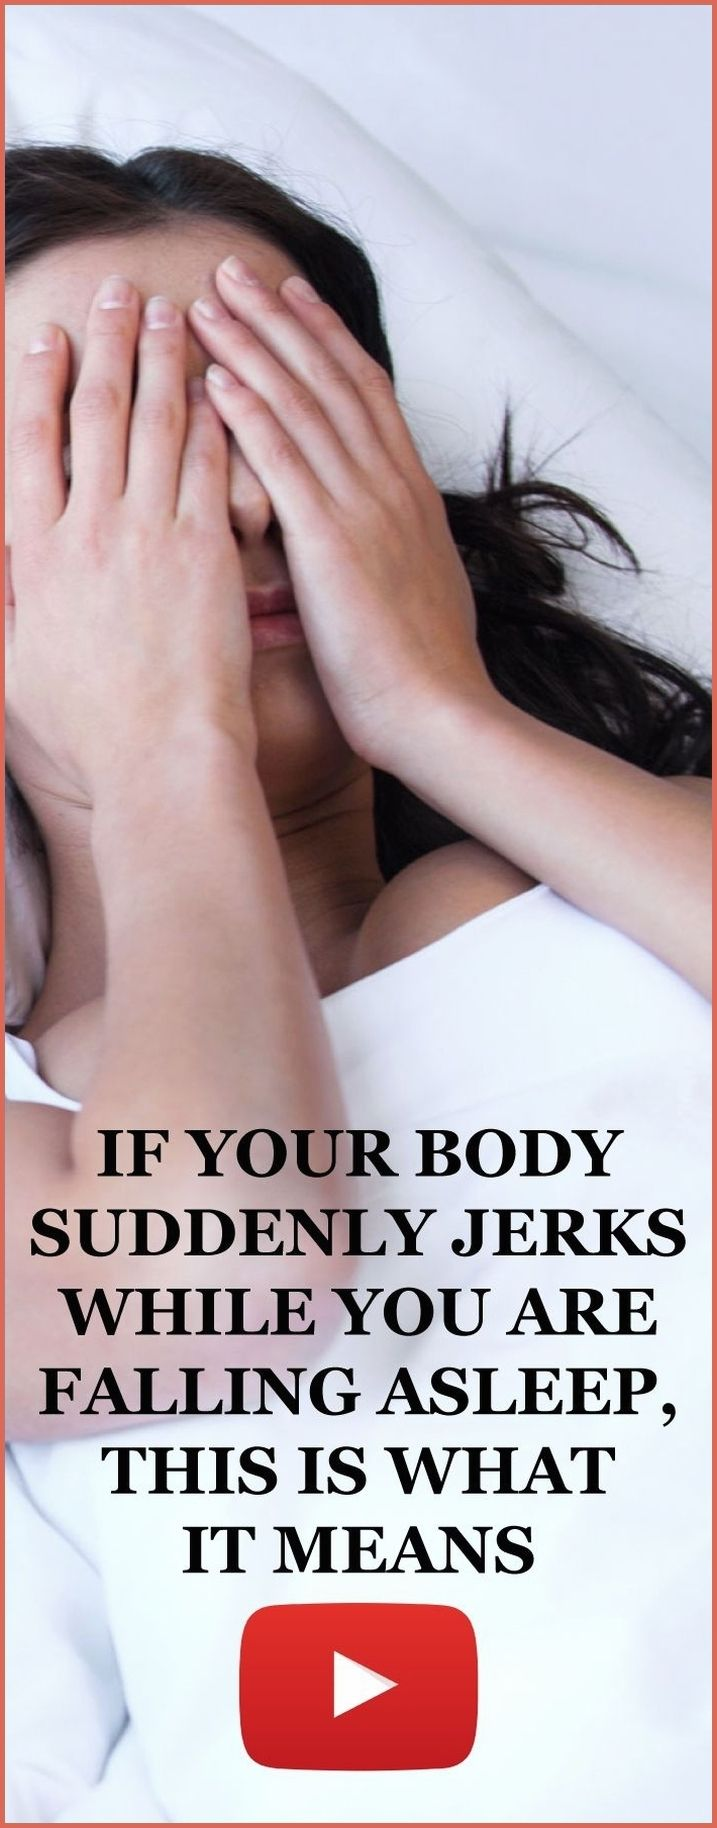 If Your Body Suddenly Jerks While You Are Falling